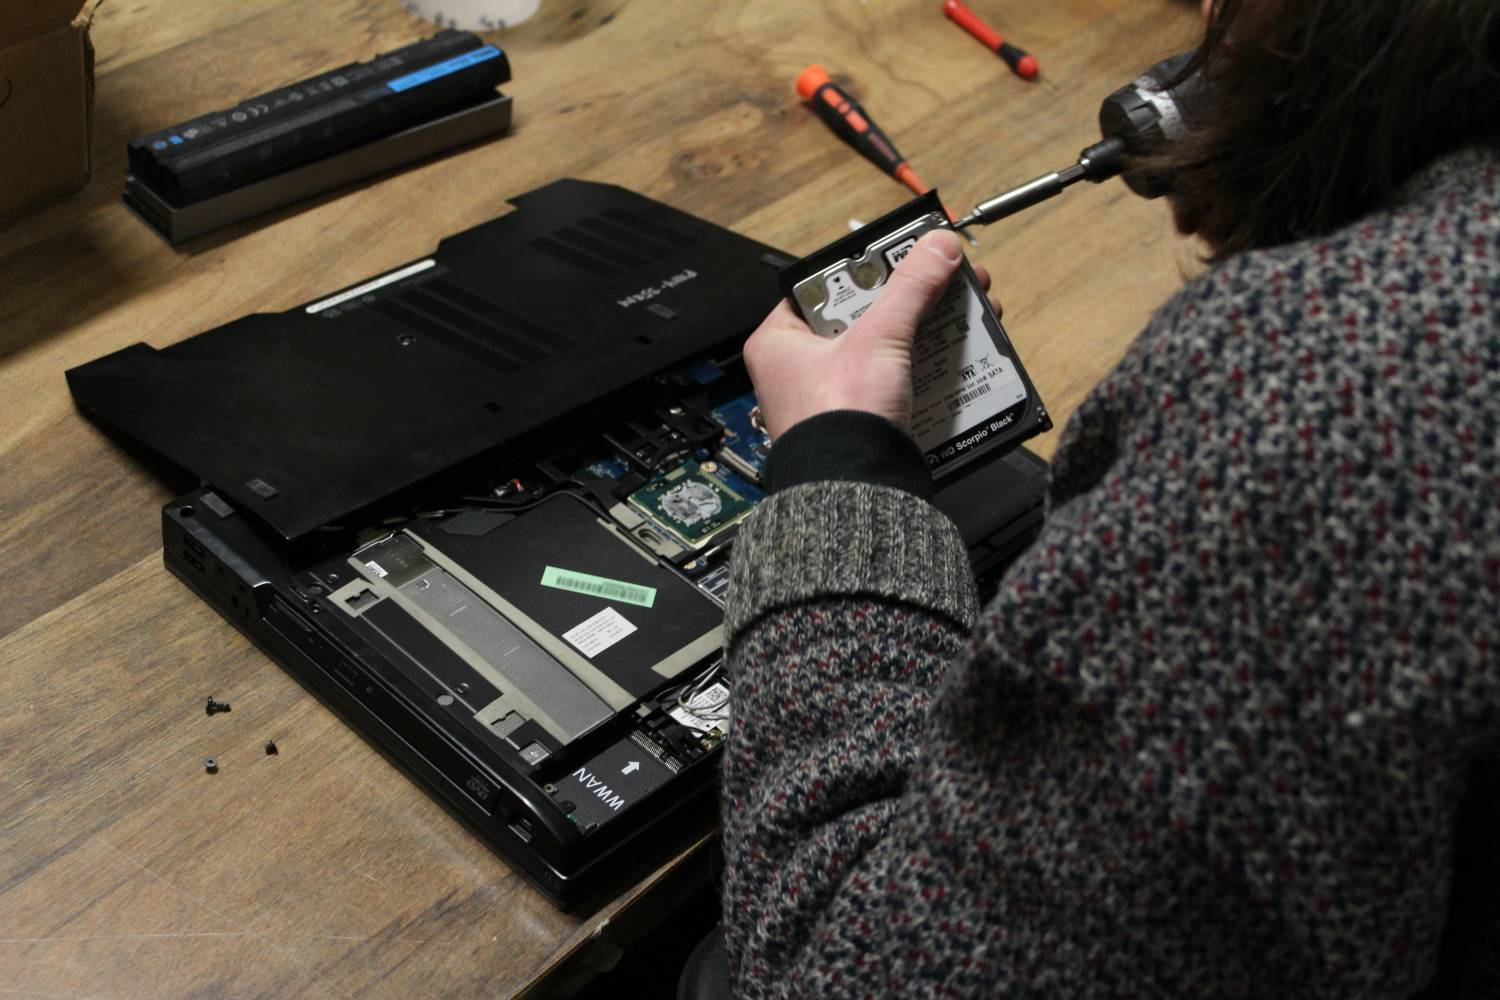 A laptop computer being opened for repair.